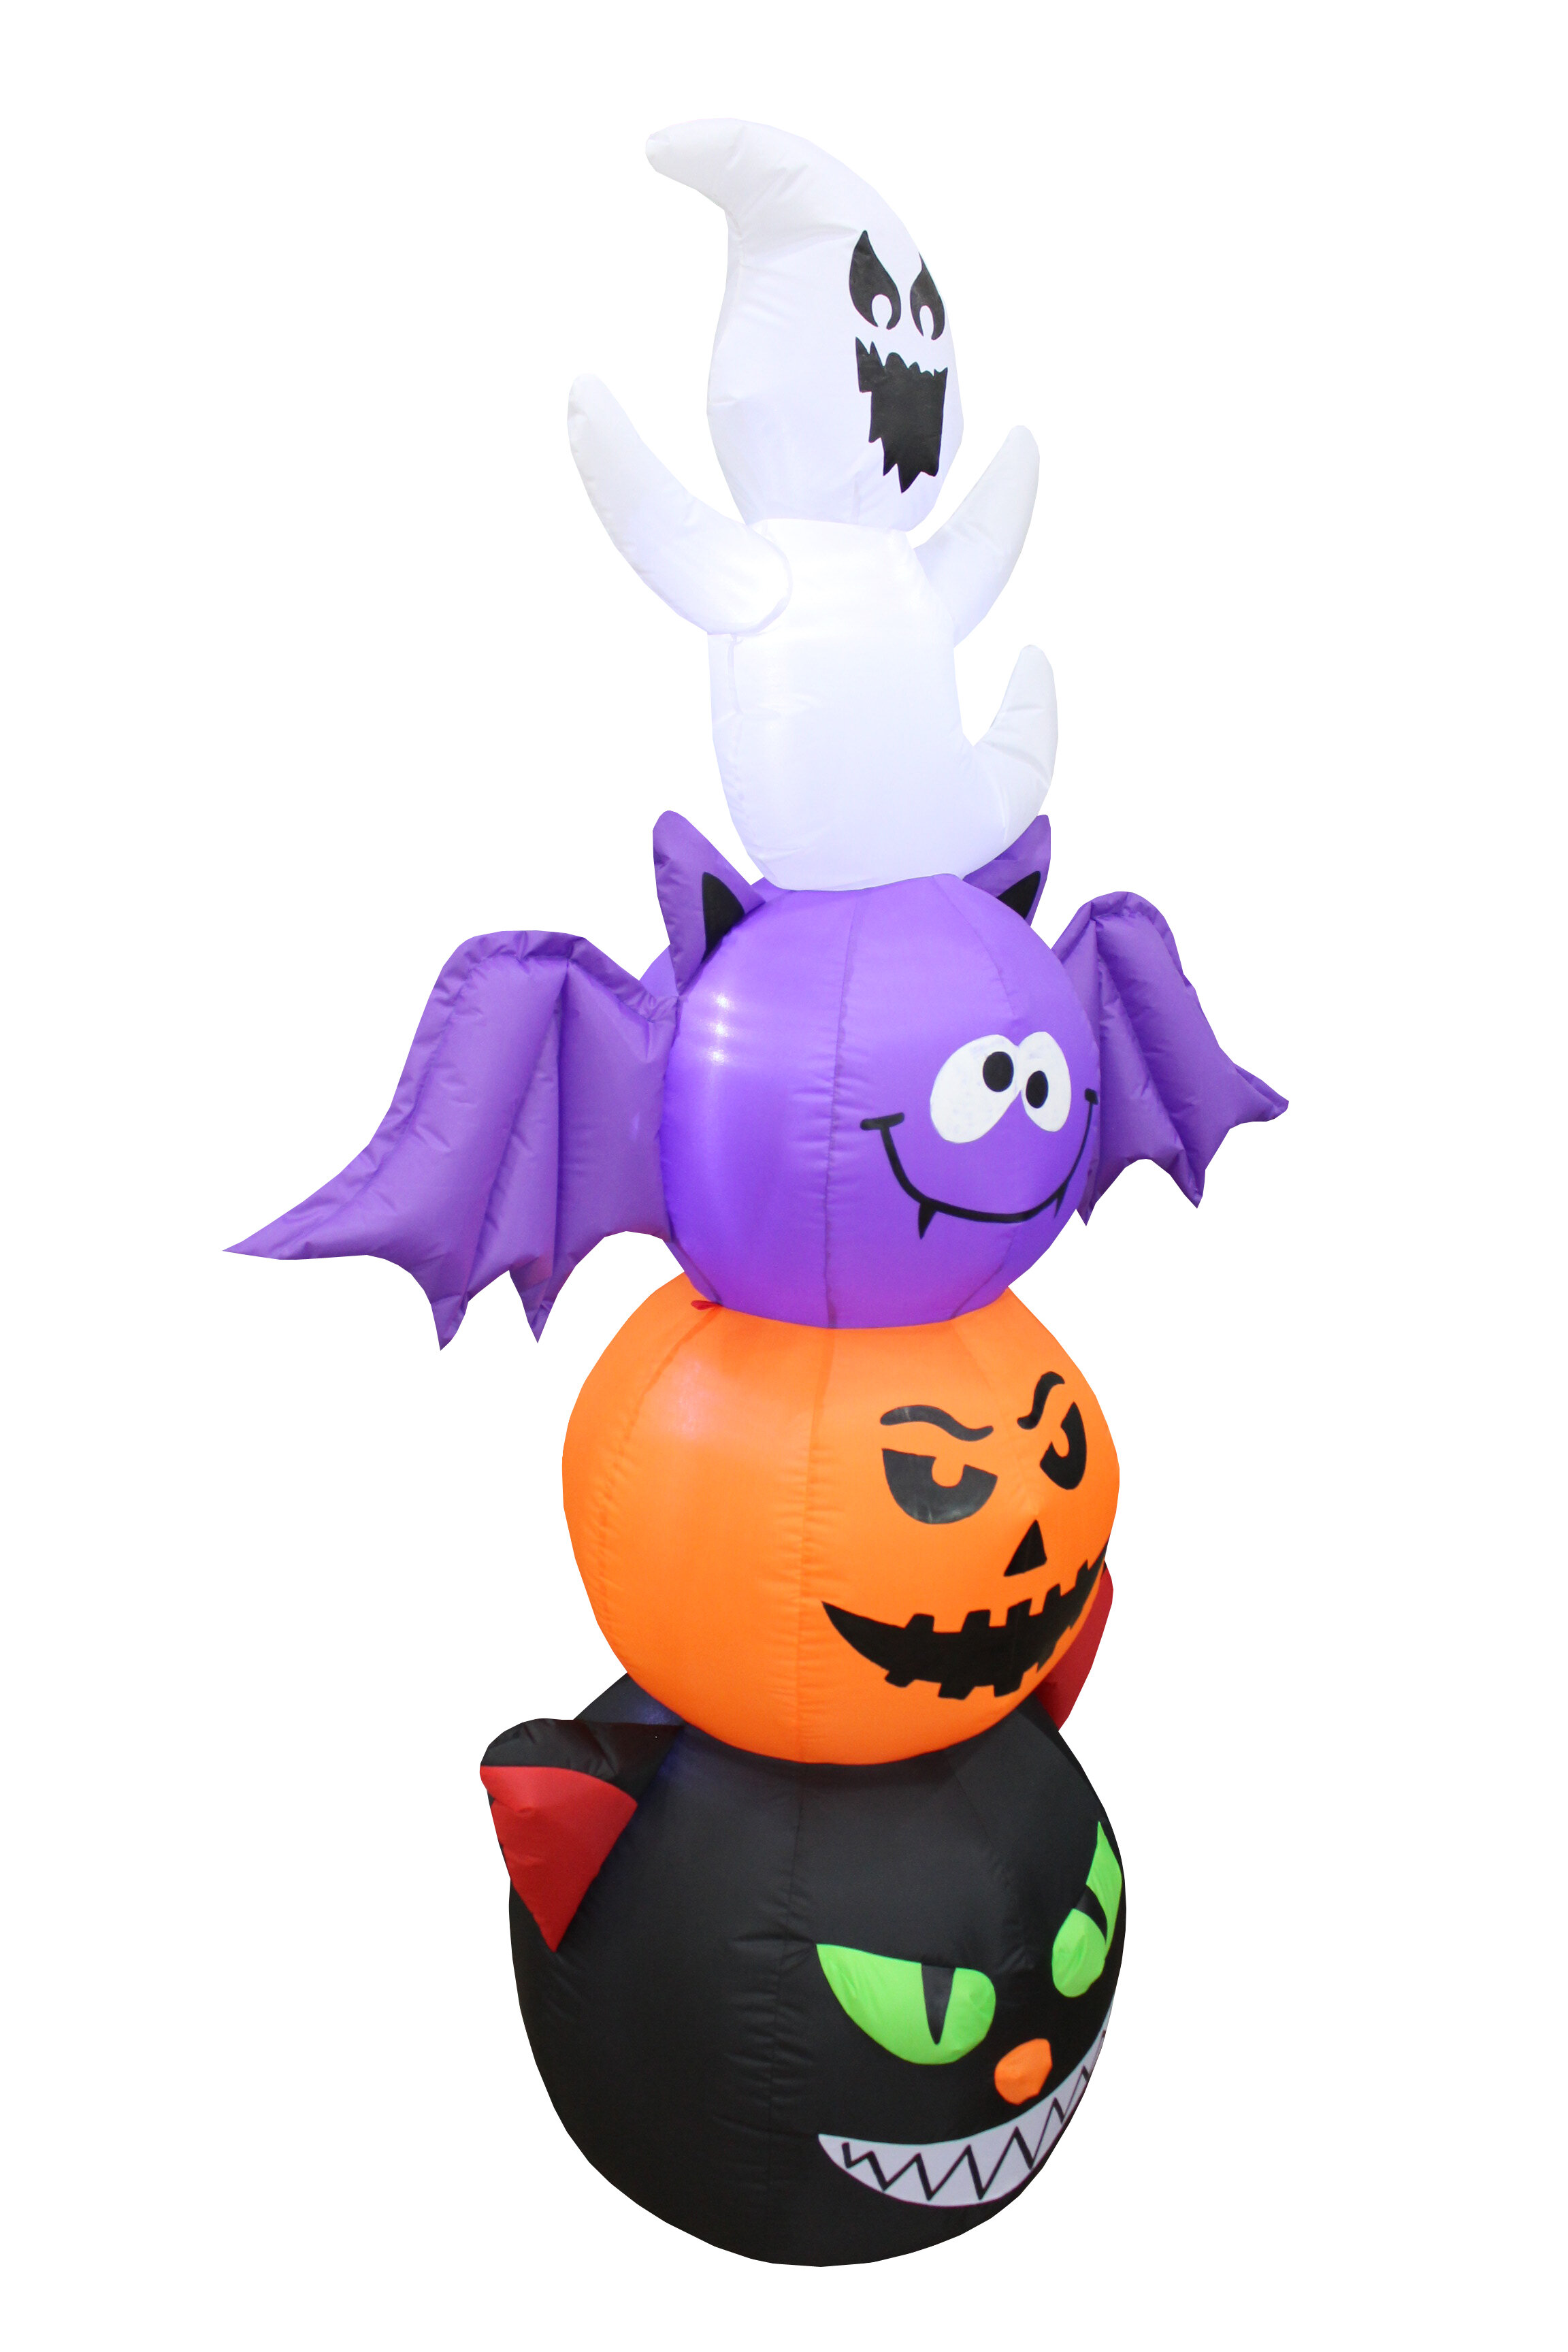 The Holiday Aisle Halloween Stacked Figures Totem Pole Inflatable With Cat Pumpkin Bat And Ghost Reviews Wayfair